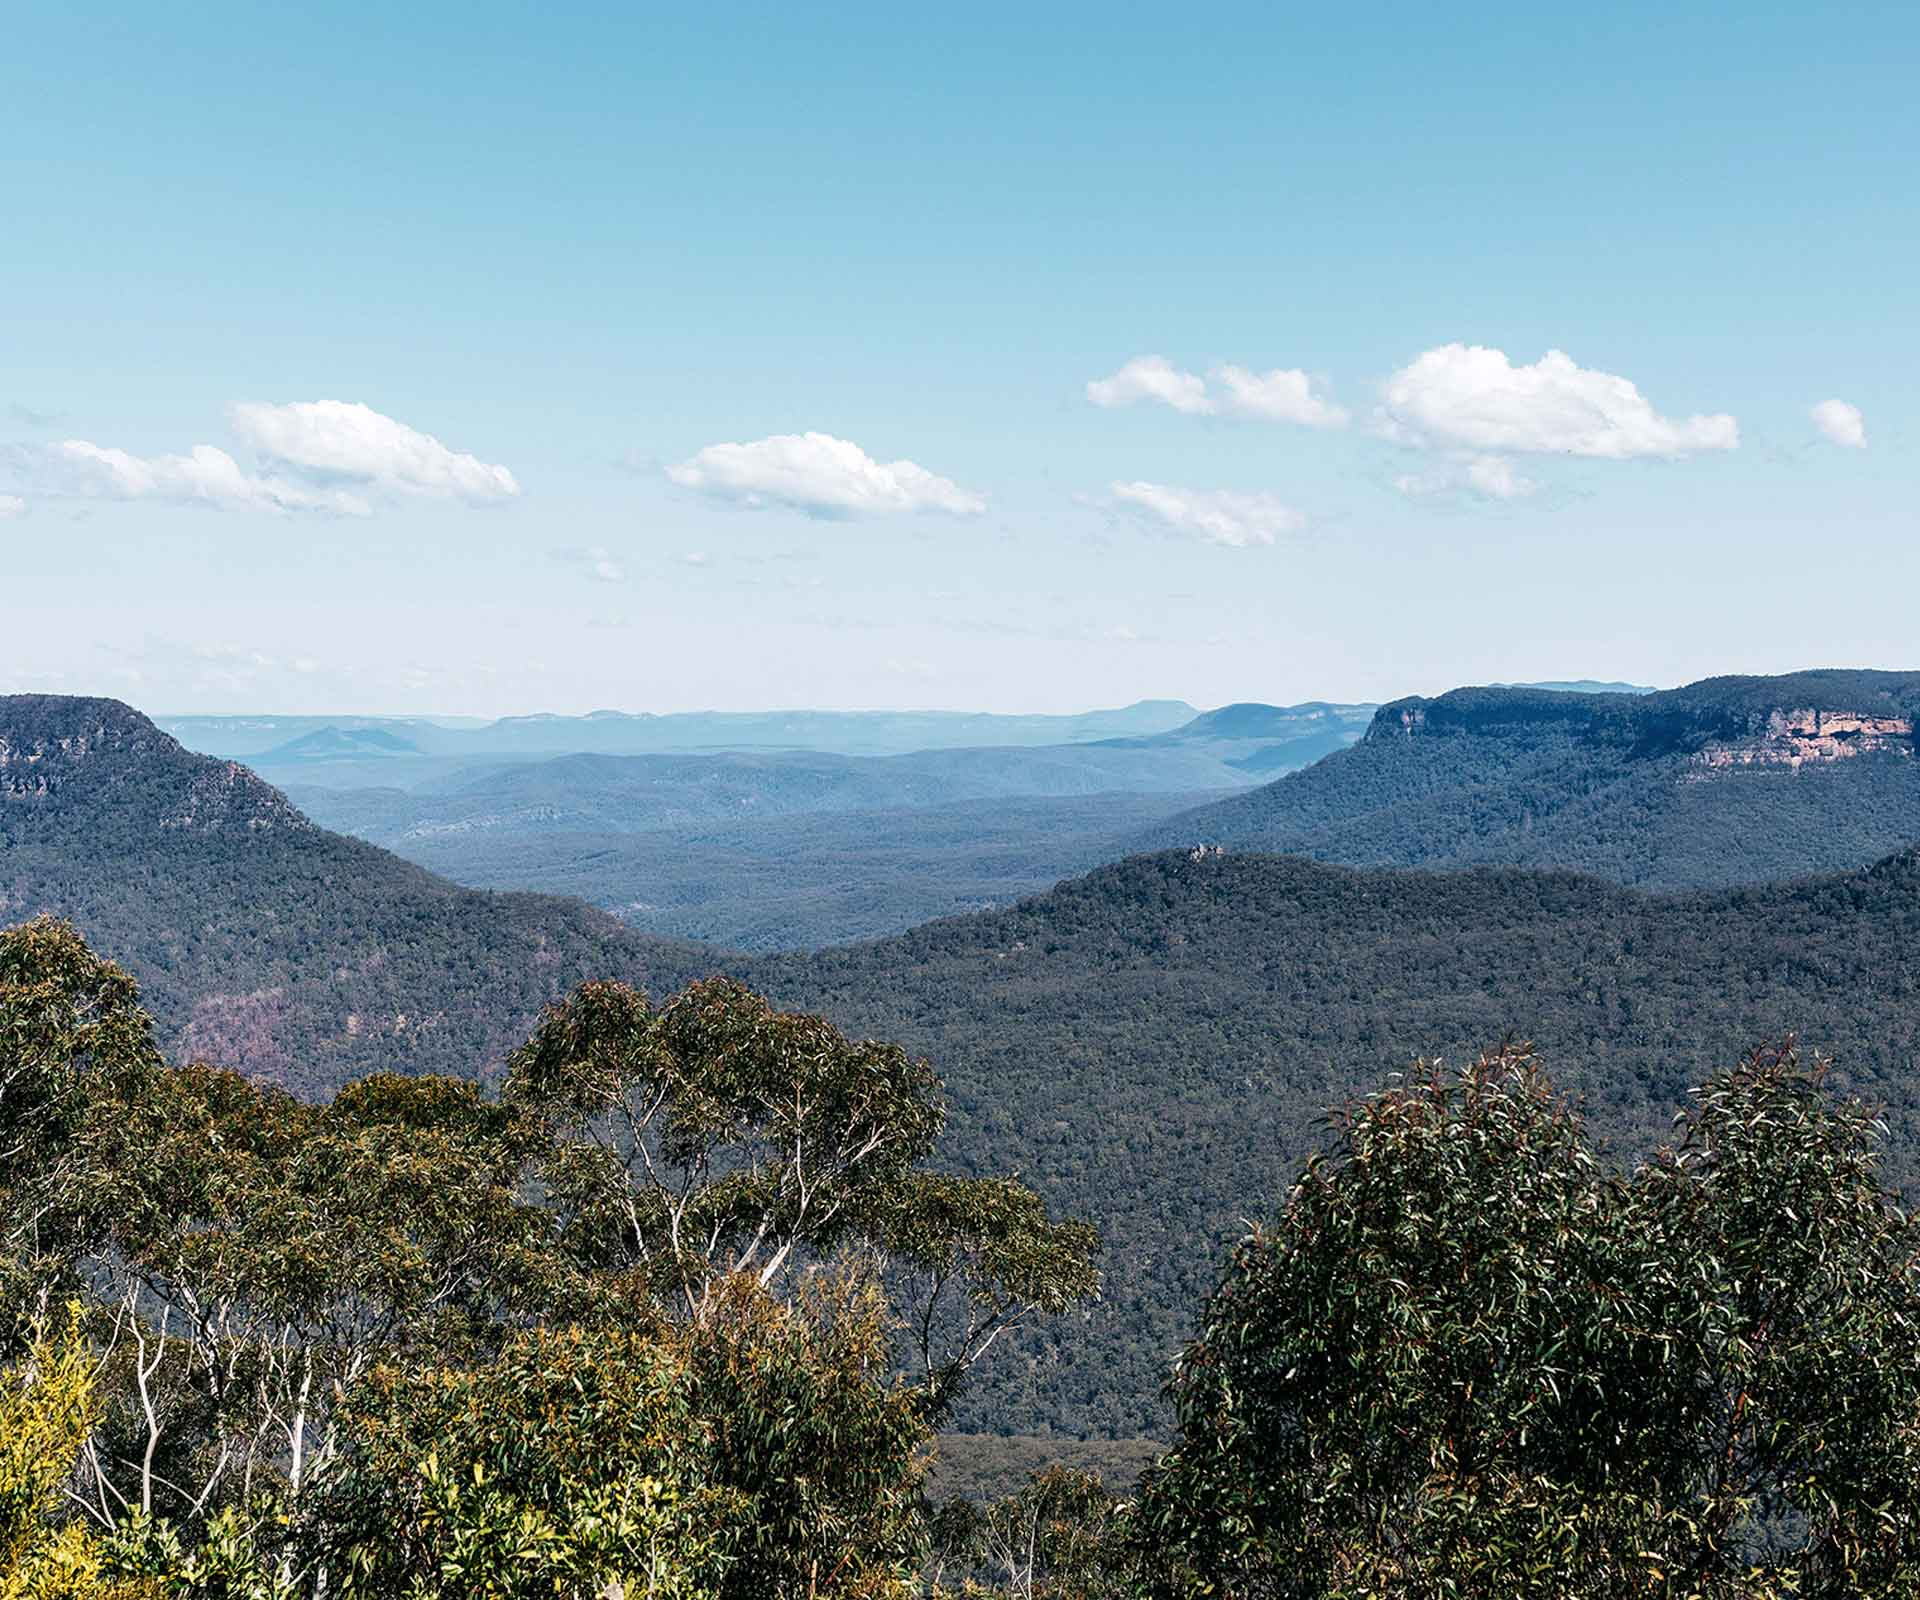 Katoomba things to do: where to eat, shop and stay